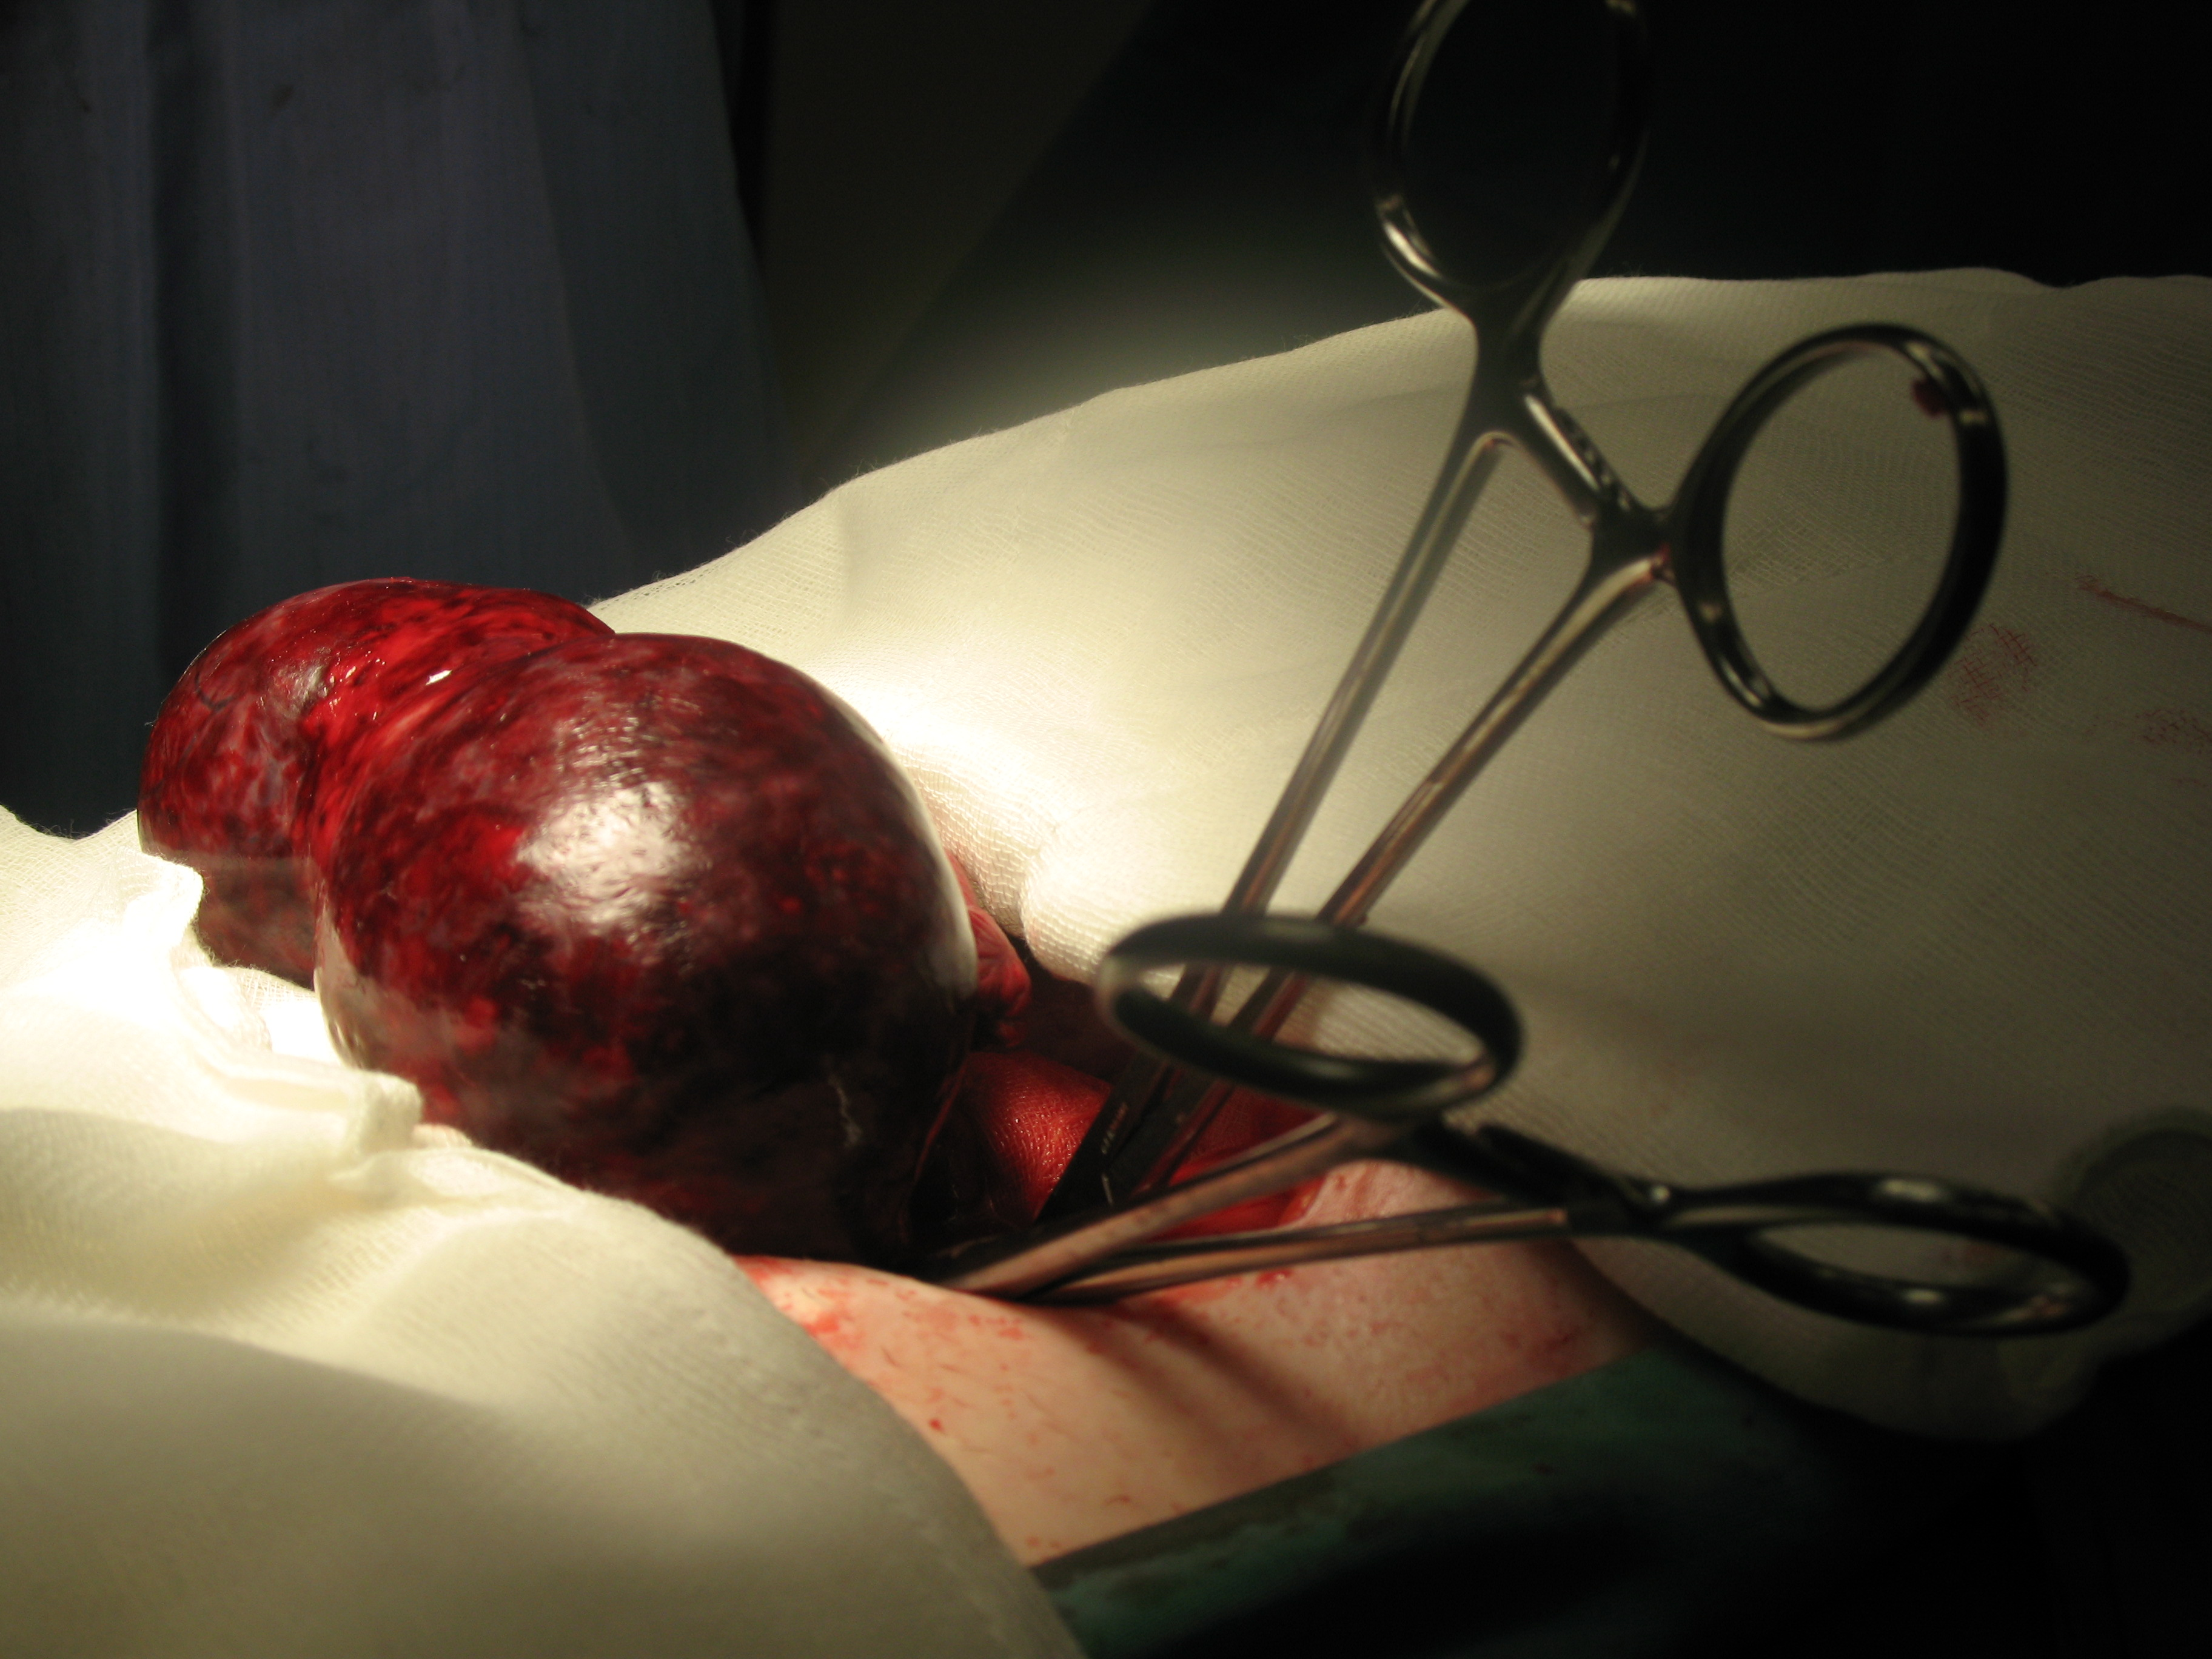 removal-gangerernous-ovarian-cyst through abdominal cut laparotomy